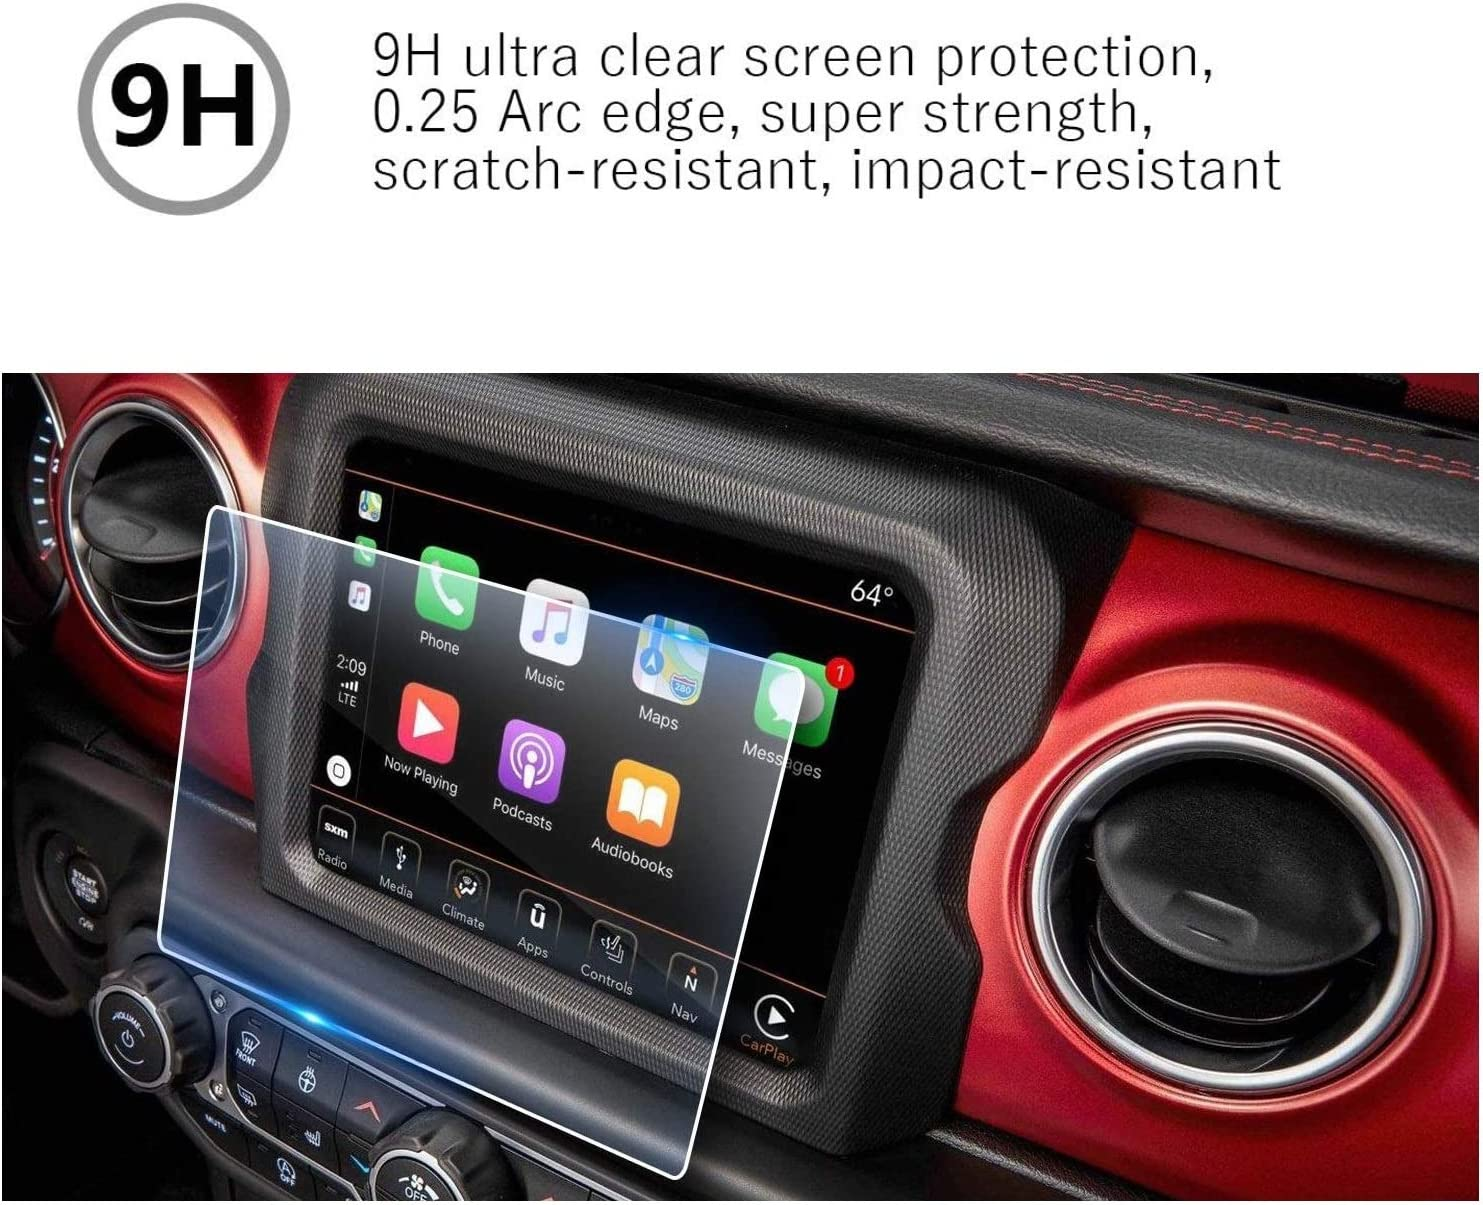 MBSIX Tempered Glass Screen Protector Compatiple with 2020 Jeep Wrangler 8.4 Inch Touch Screen,HD Clear,Scratch-Resistant,Anti Glare,Protecting Uconnect 8.4 Inch Screen